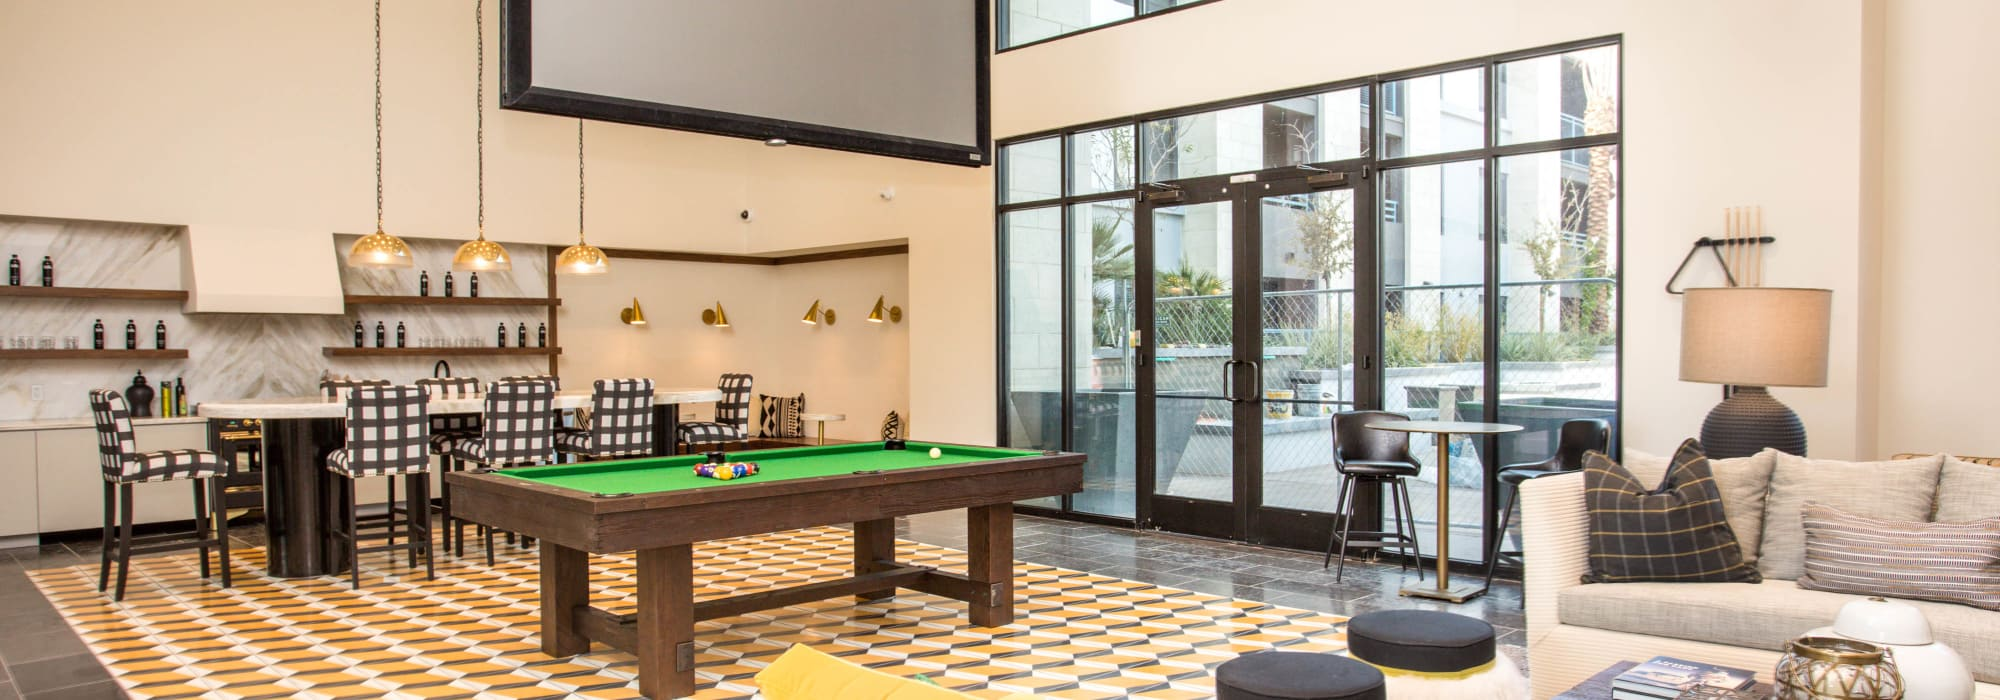 Spacious clubhouse to entertain friends and family at Lakeside Drive Apartments in Tempe, Arizona